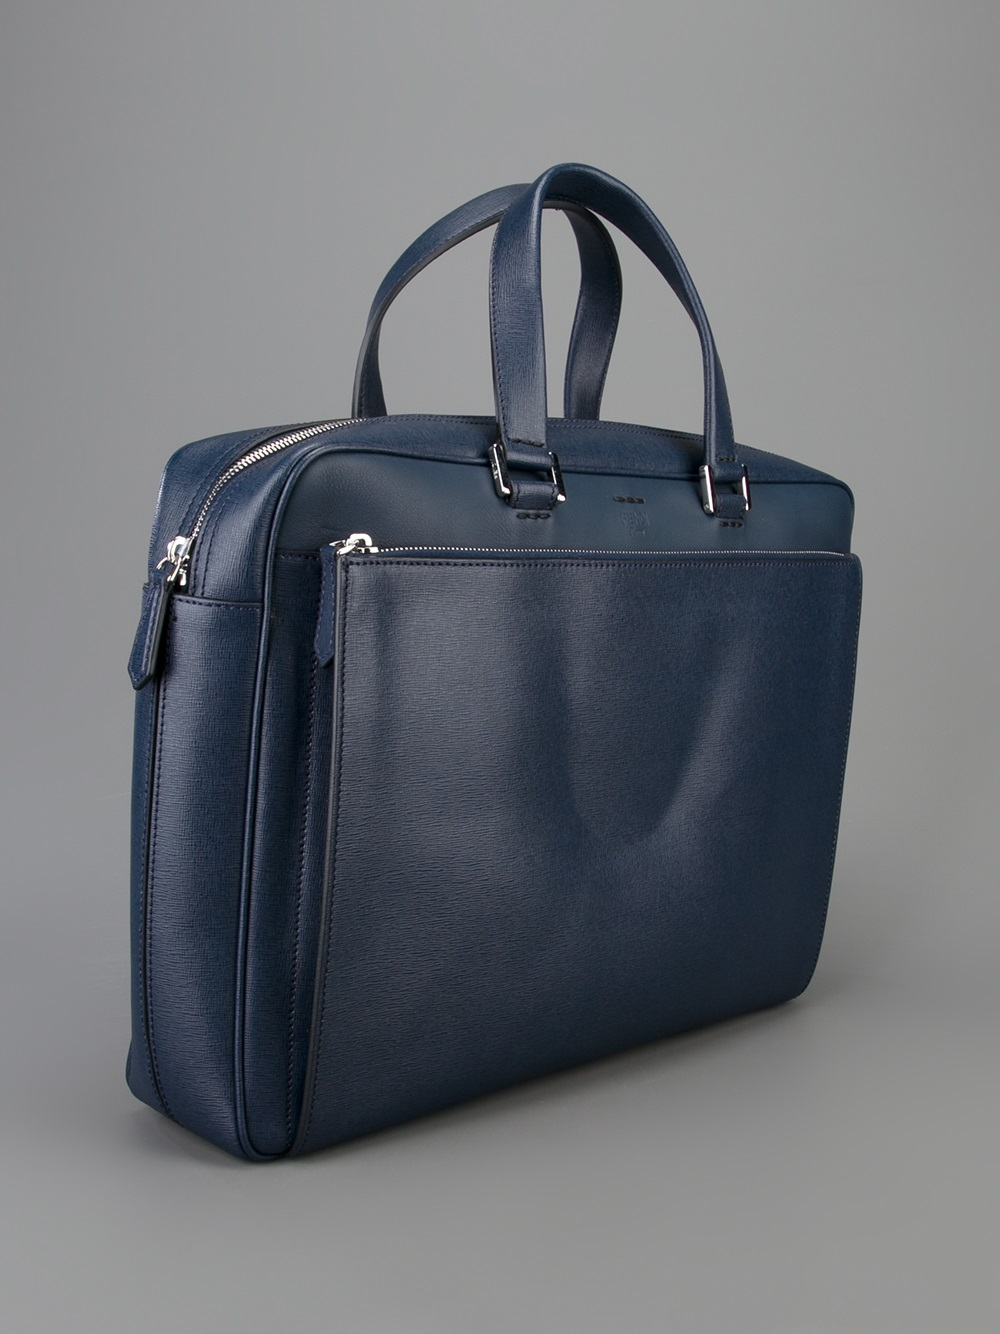 Fendi Leather Briefcase Discount With Paypal Clearance Visit Discount Ebay TKrvstH5